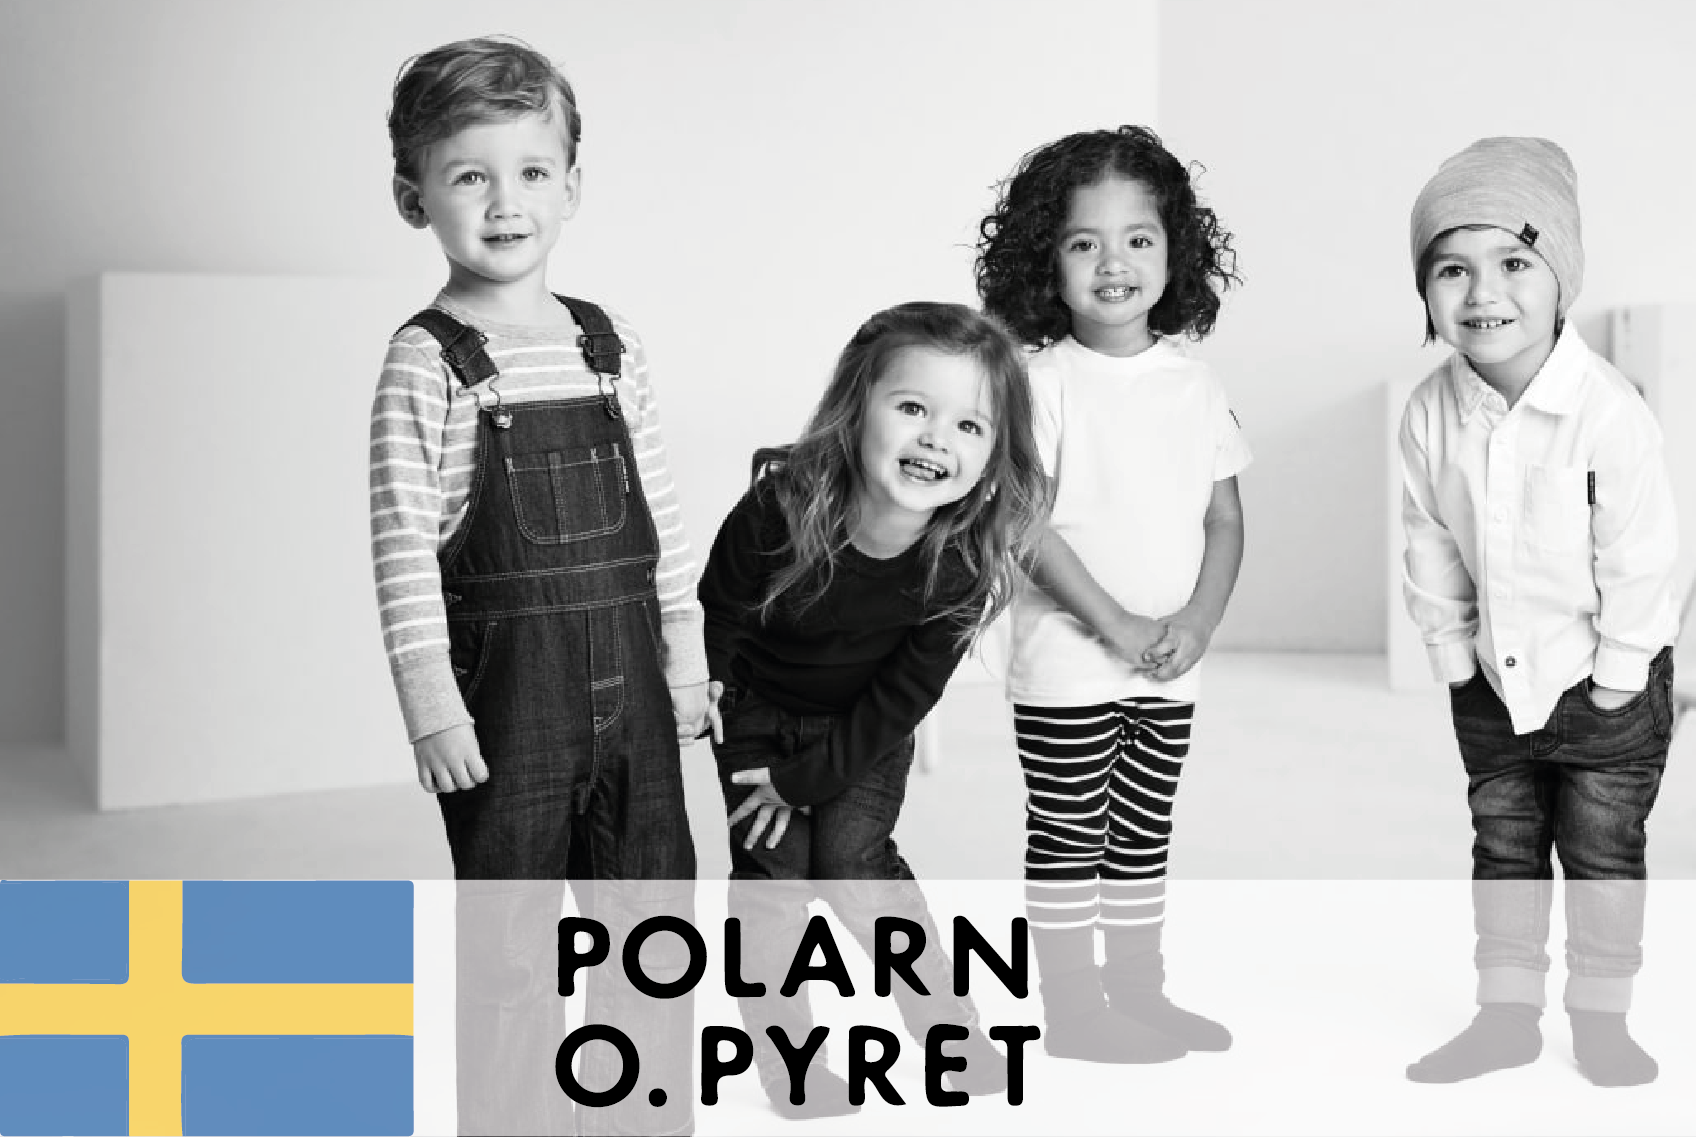 #17 Polarn O. Pyret – Durable children's clothing fit for reuse - CIRCit Nord